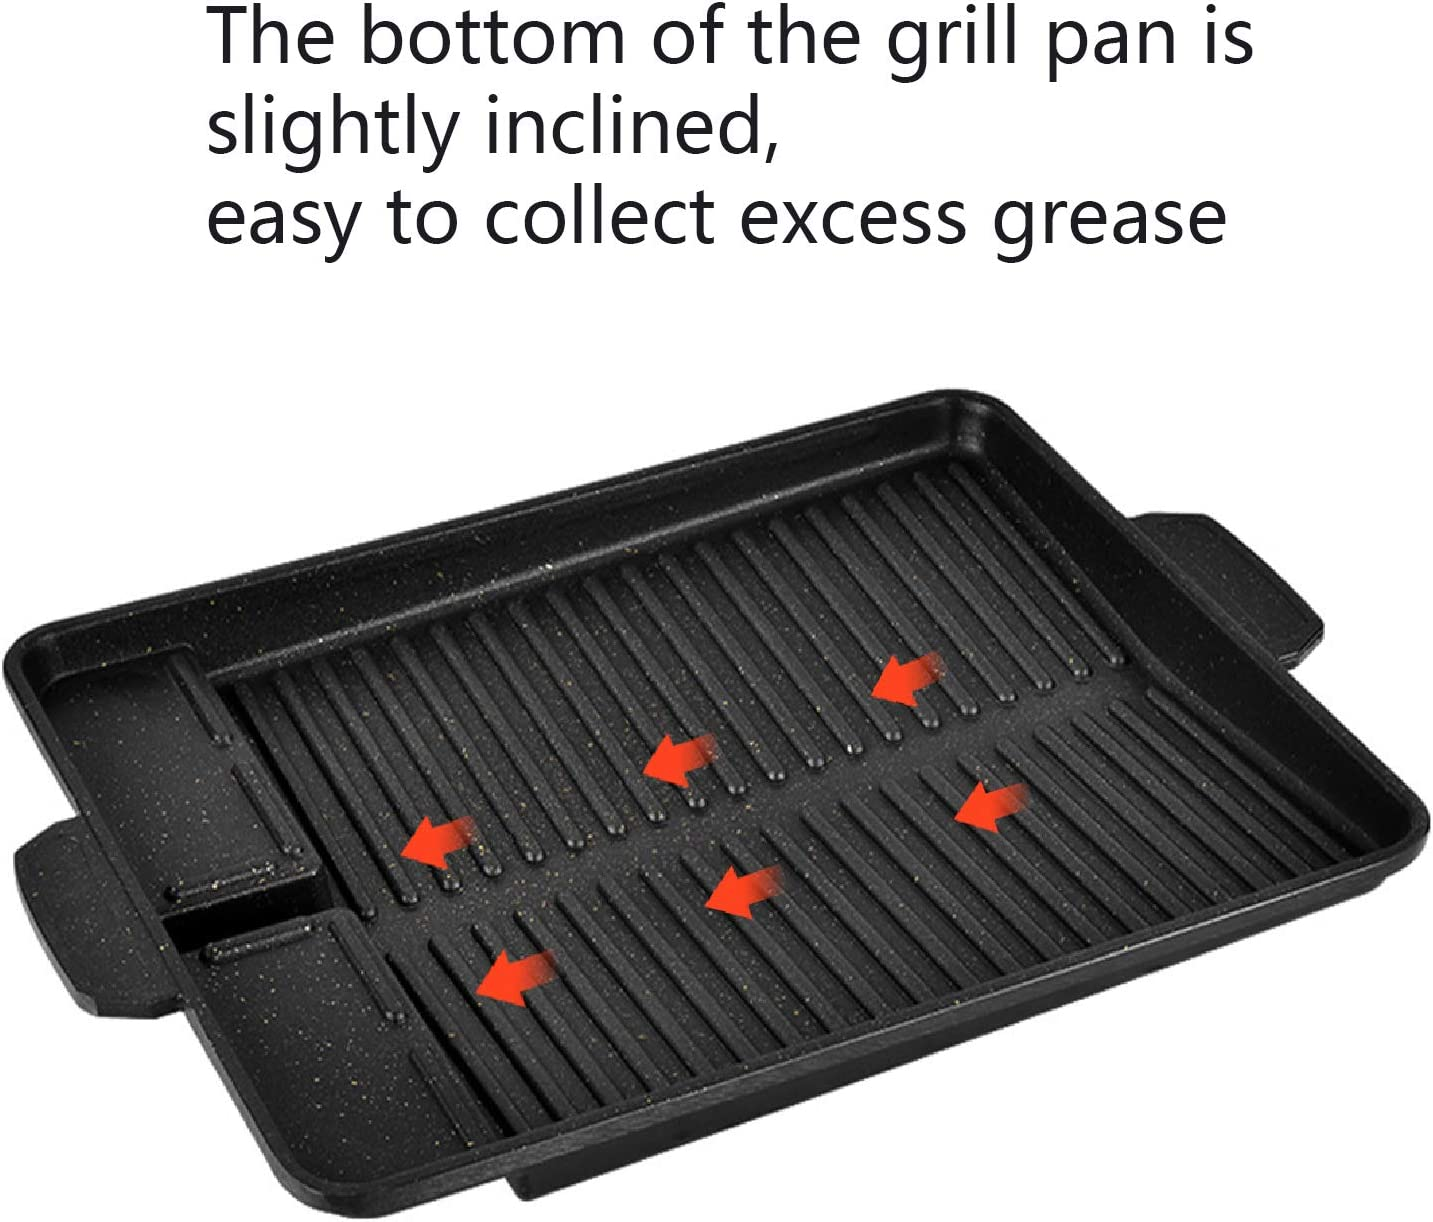 black IAXSEE Grill Pan For Stovetop with Dual Handles|Korean Non-stick barbecue tray|Stove Top Grill,Square Grilling Pan with Grease Draining System